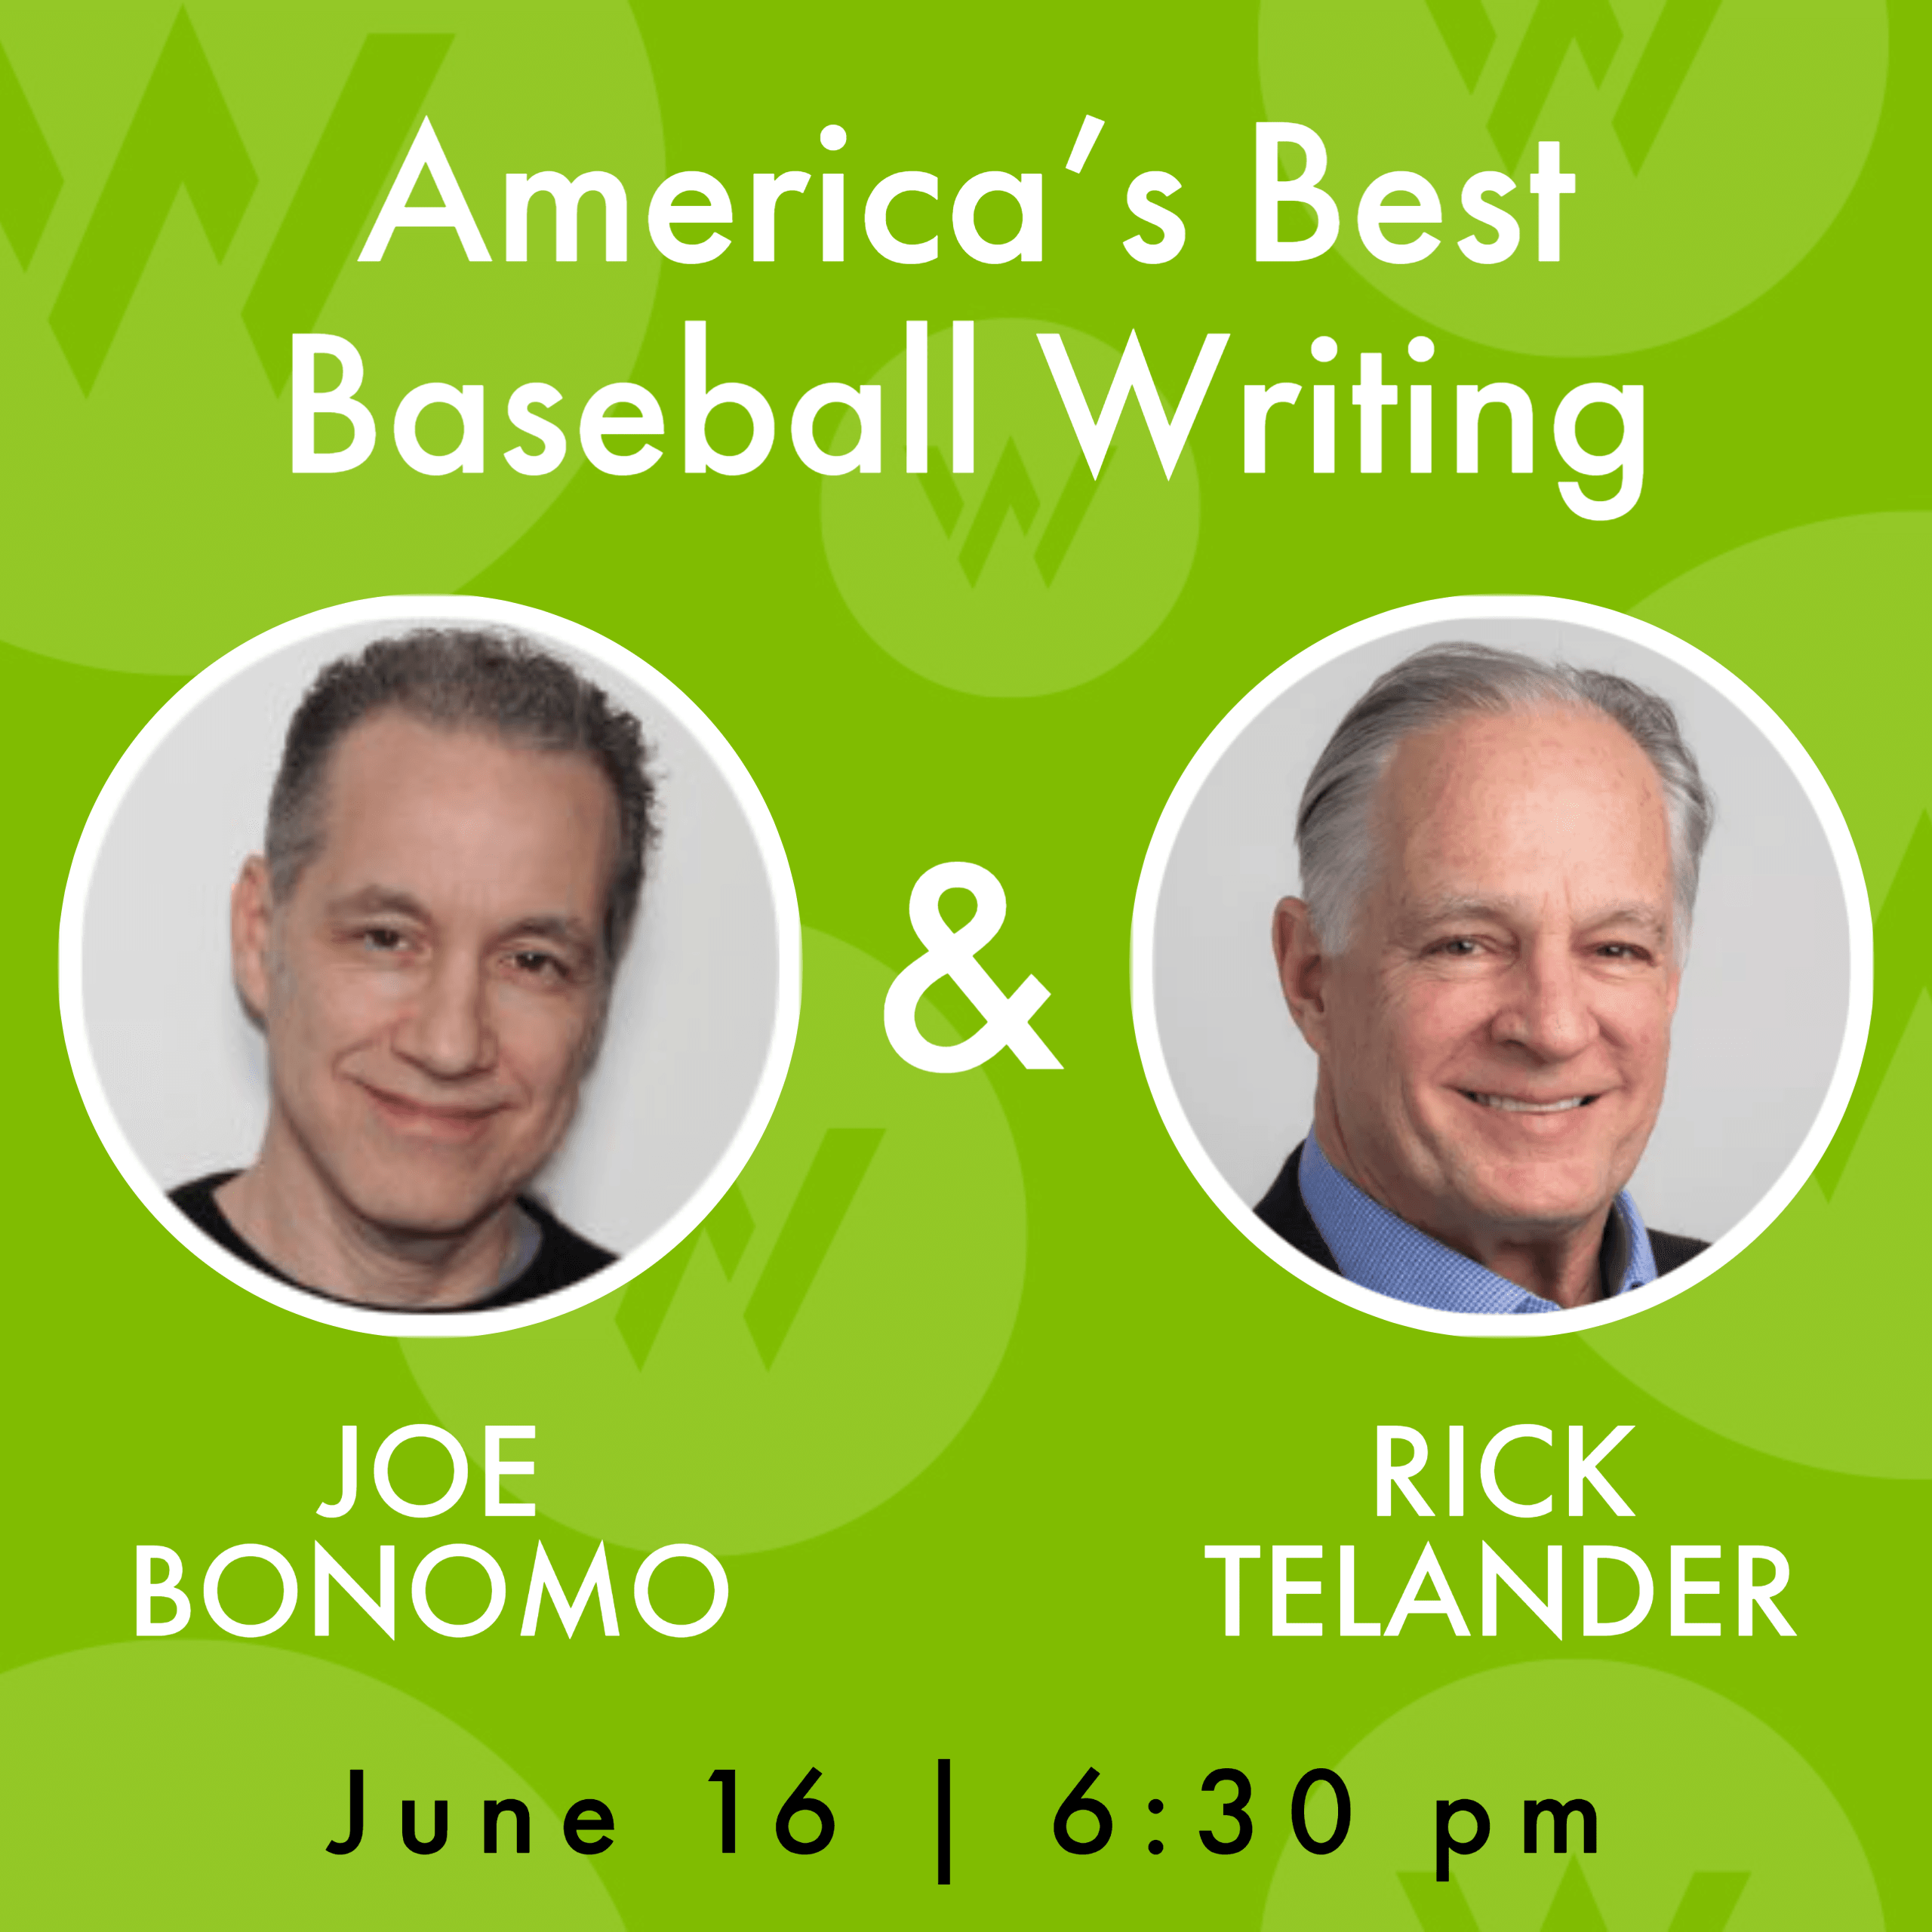 America's Best Baseball Writing, a conversation with writers Joe Bonomo and Rick Telander hosted by the American Writers Museum on June 16 at 6:30 pm central